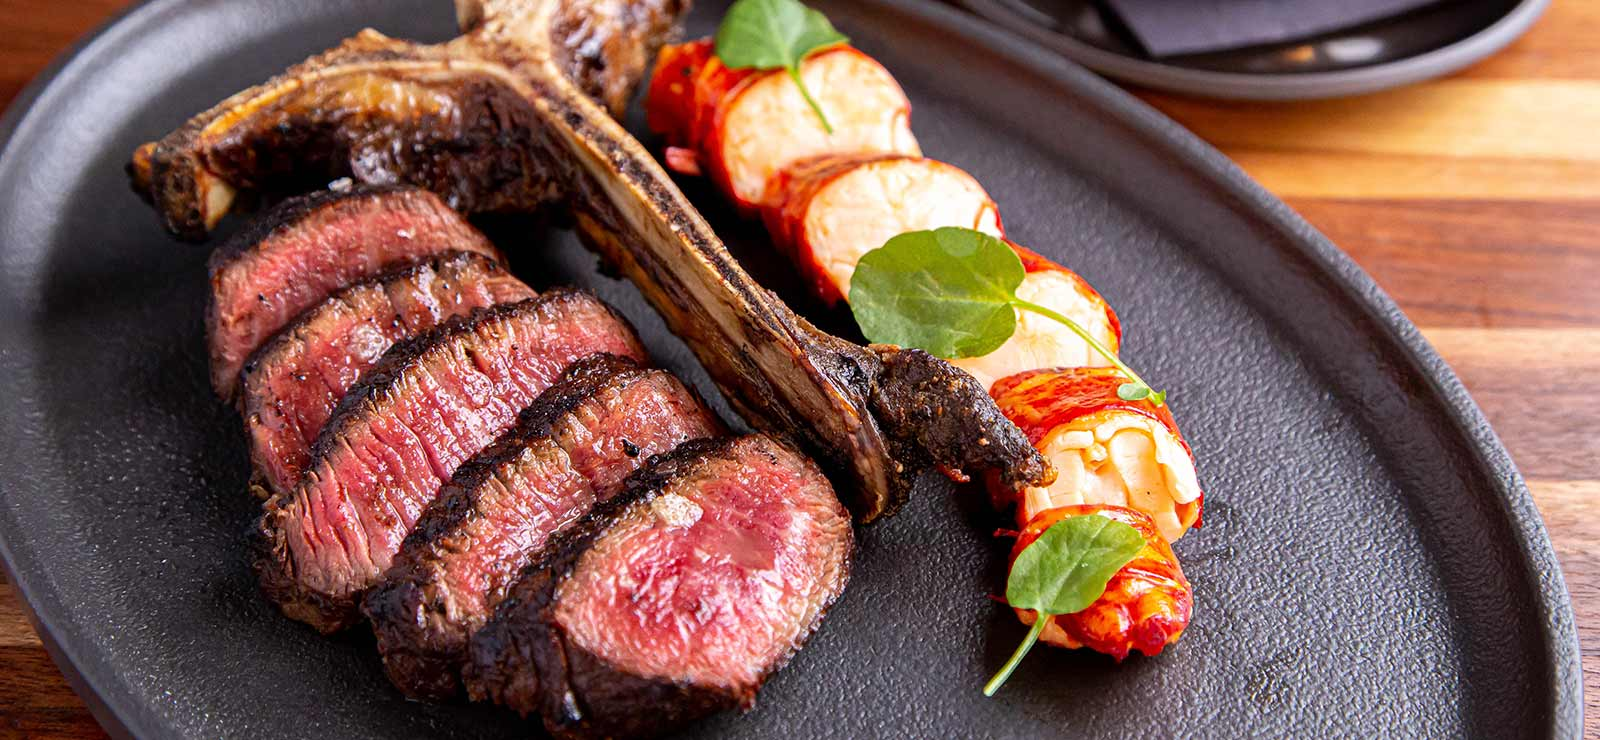 Grilled steak plated